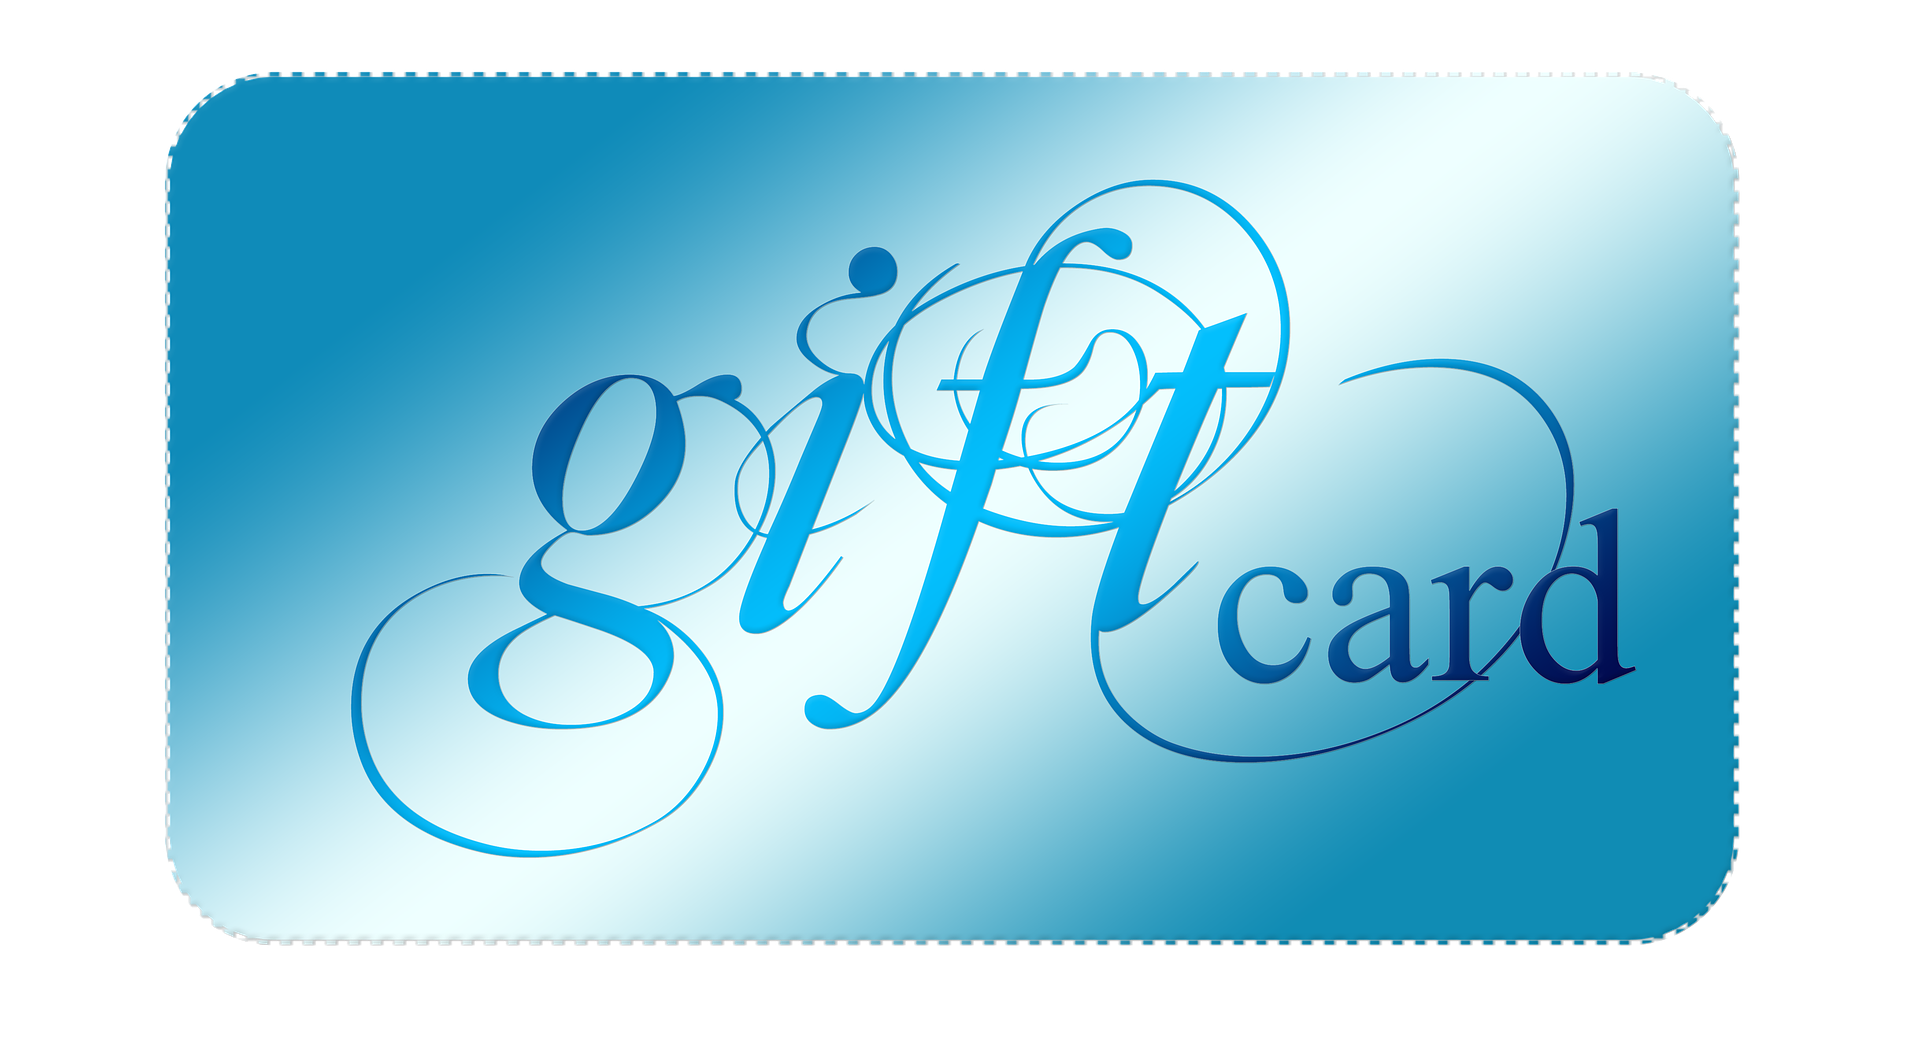 With high end innovation, the gift cards are changing rapidly for good